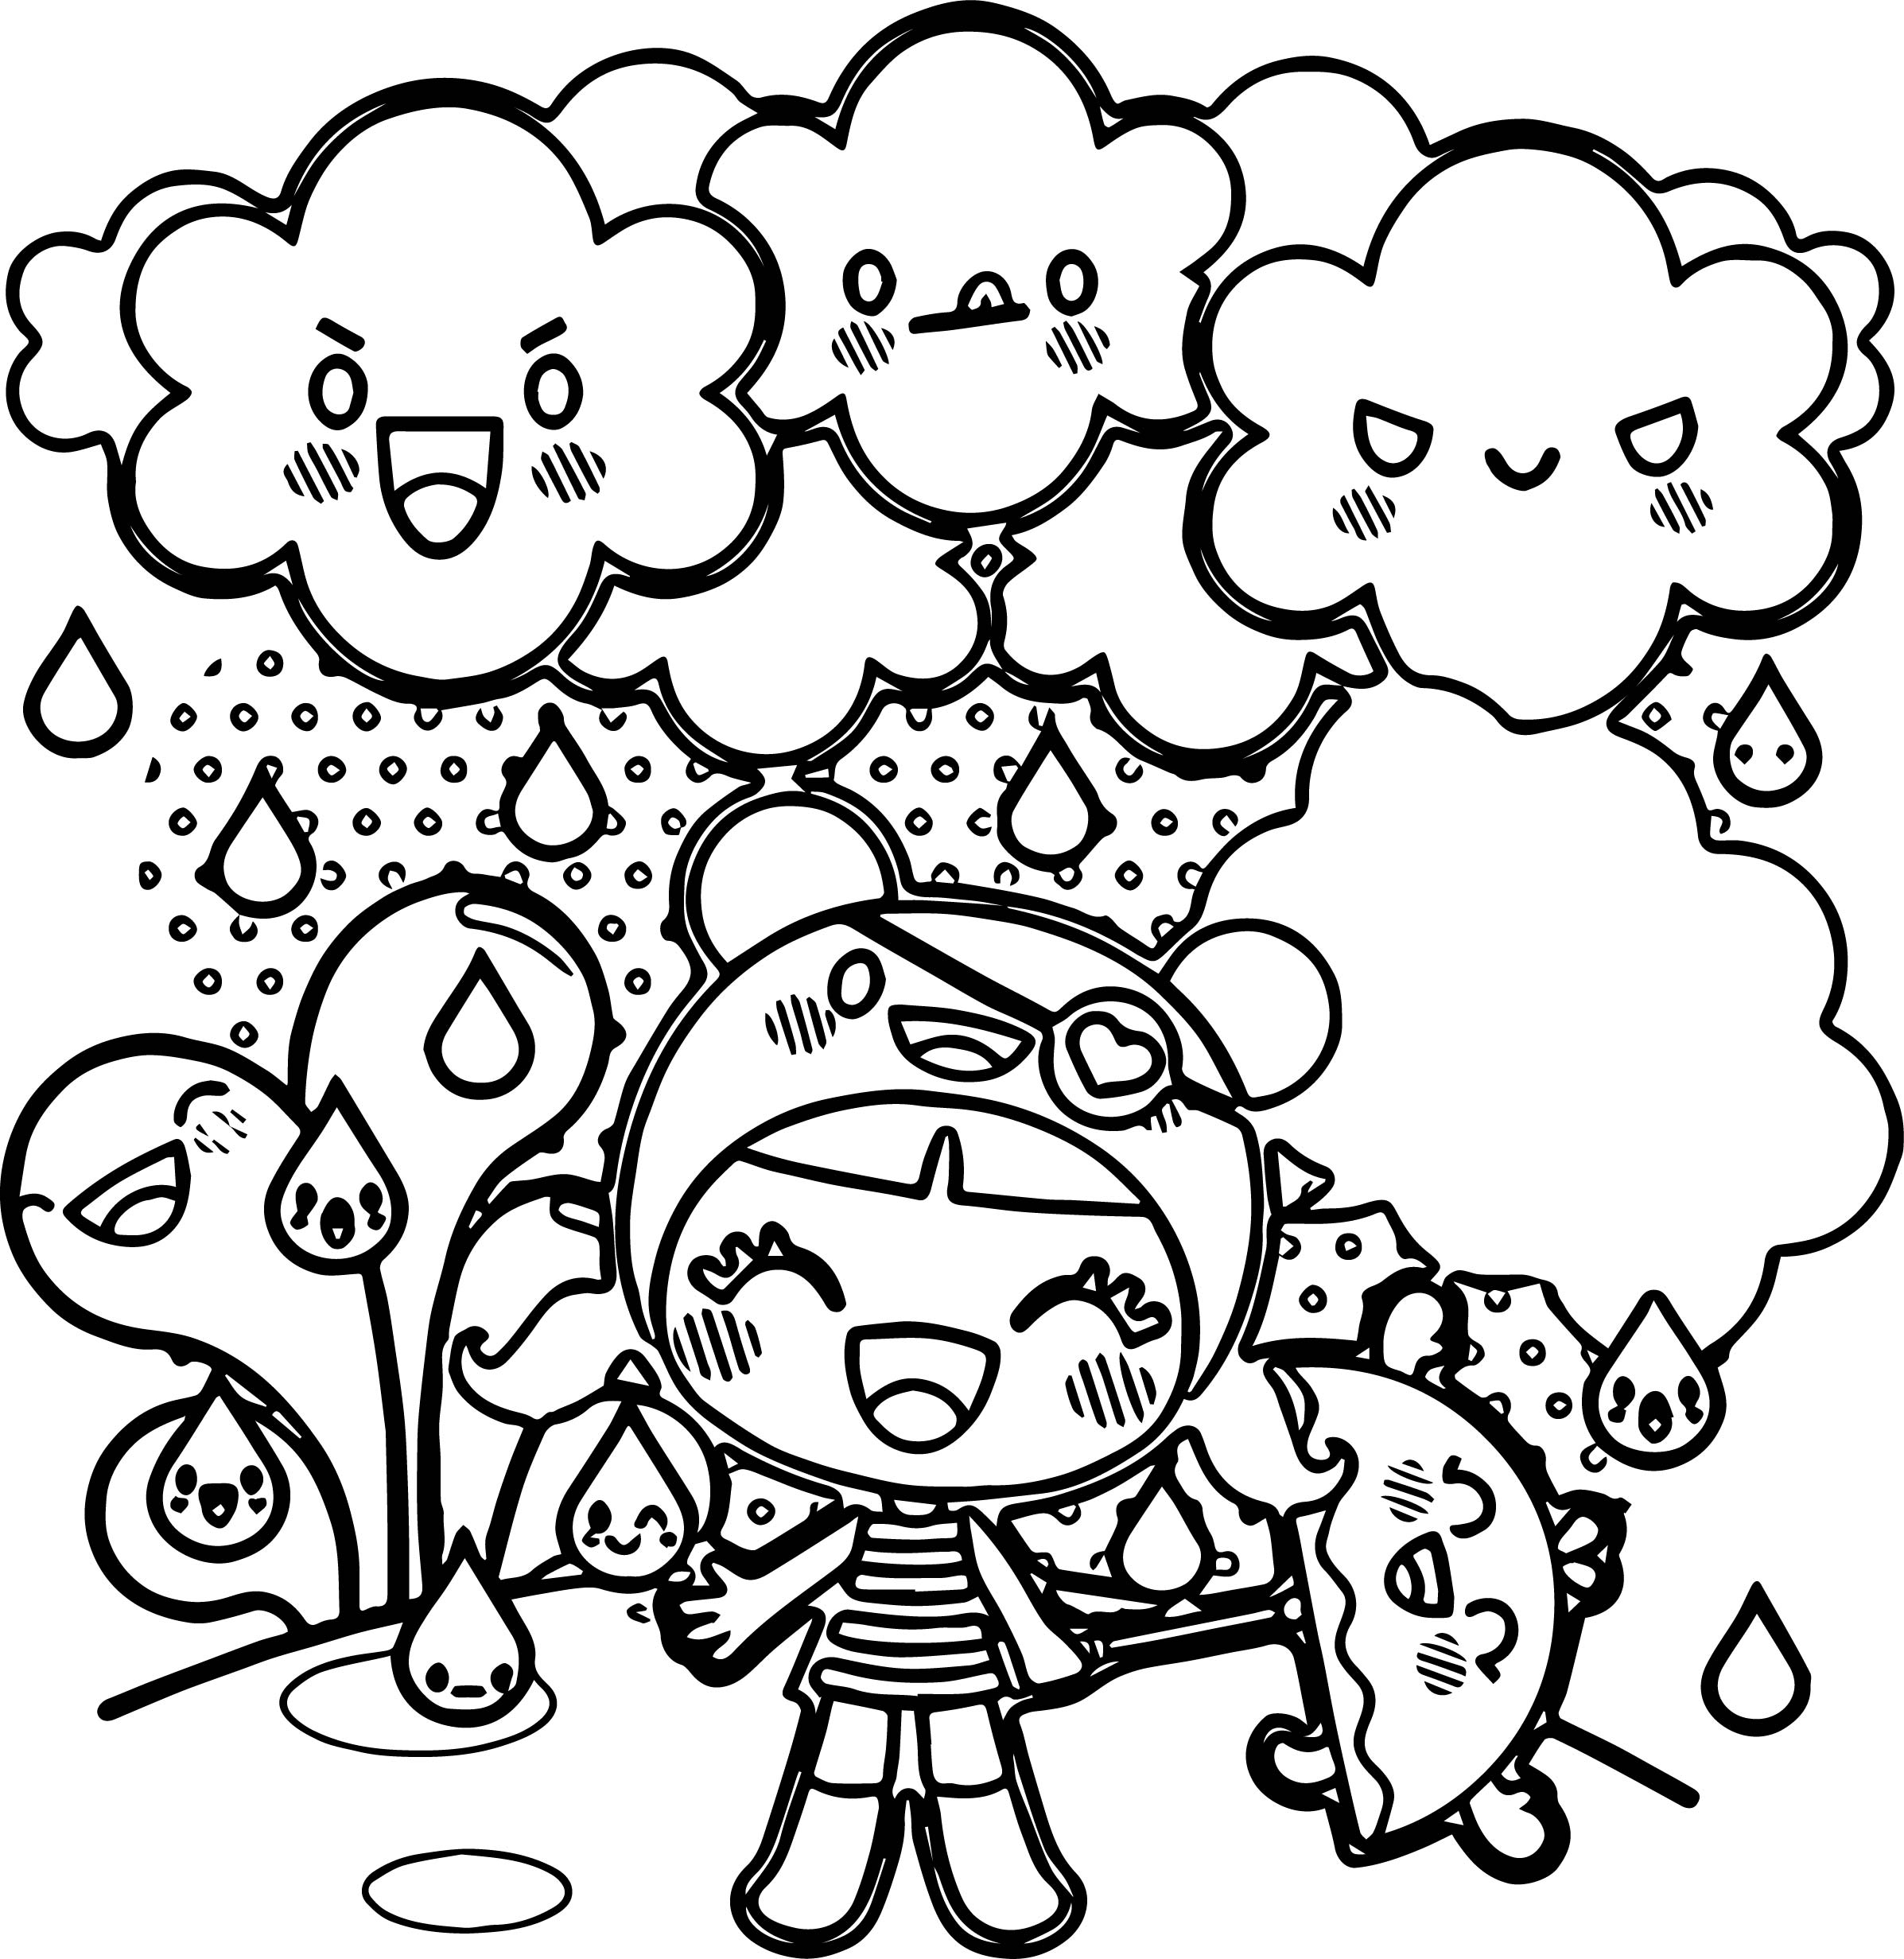 Chibi Girl Cloud Characters Coloring Page